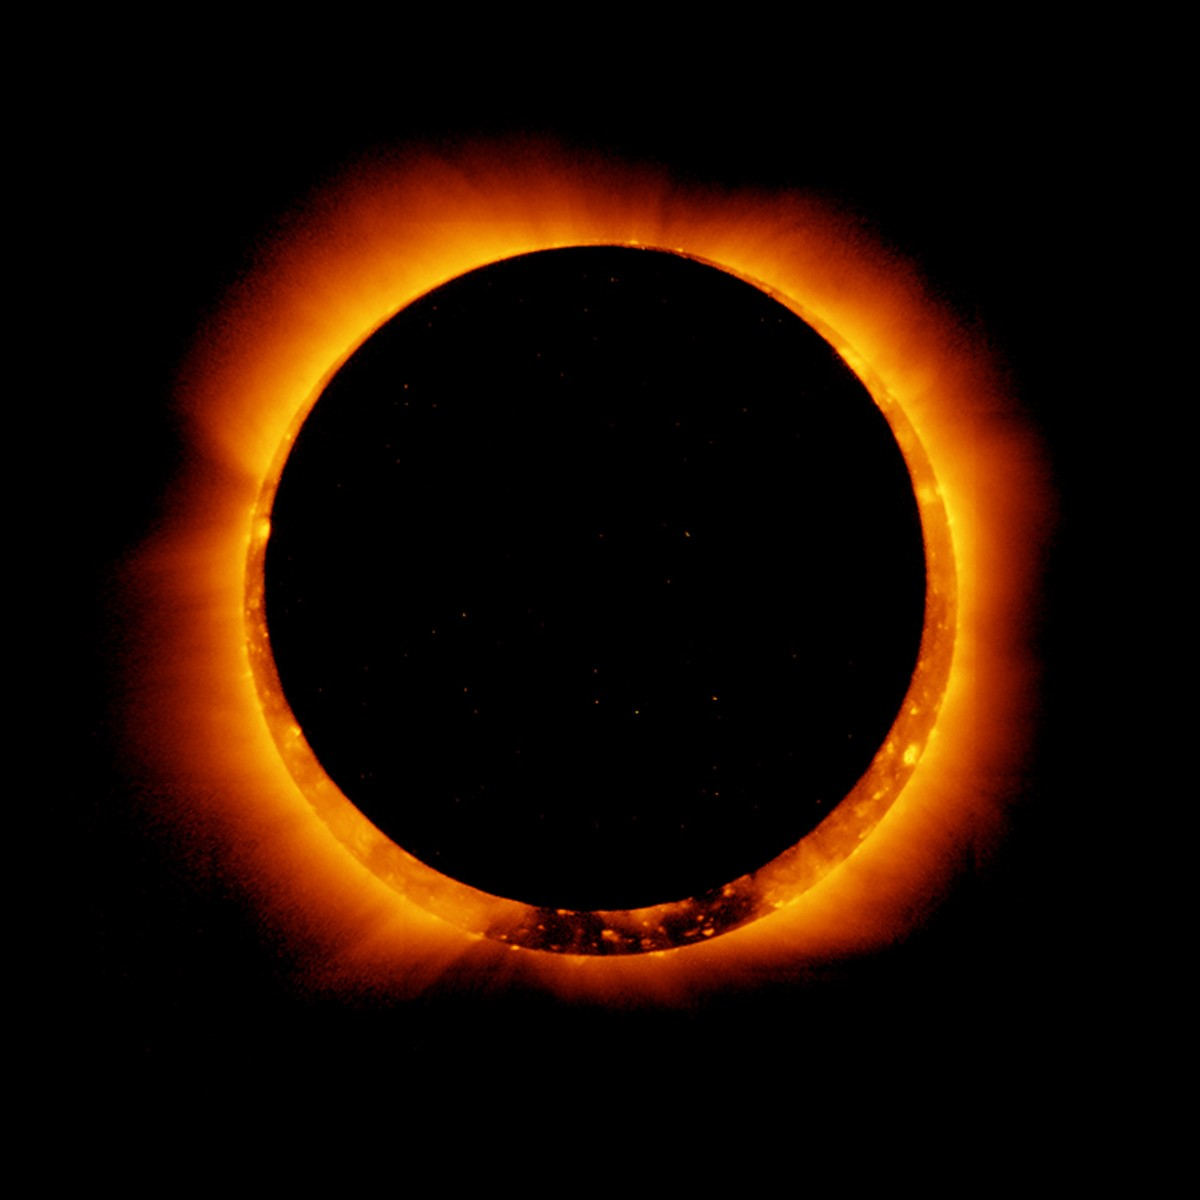 gal_solar-eclipse-credit-nasa.jpg